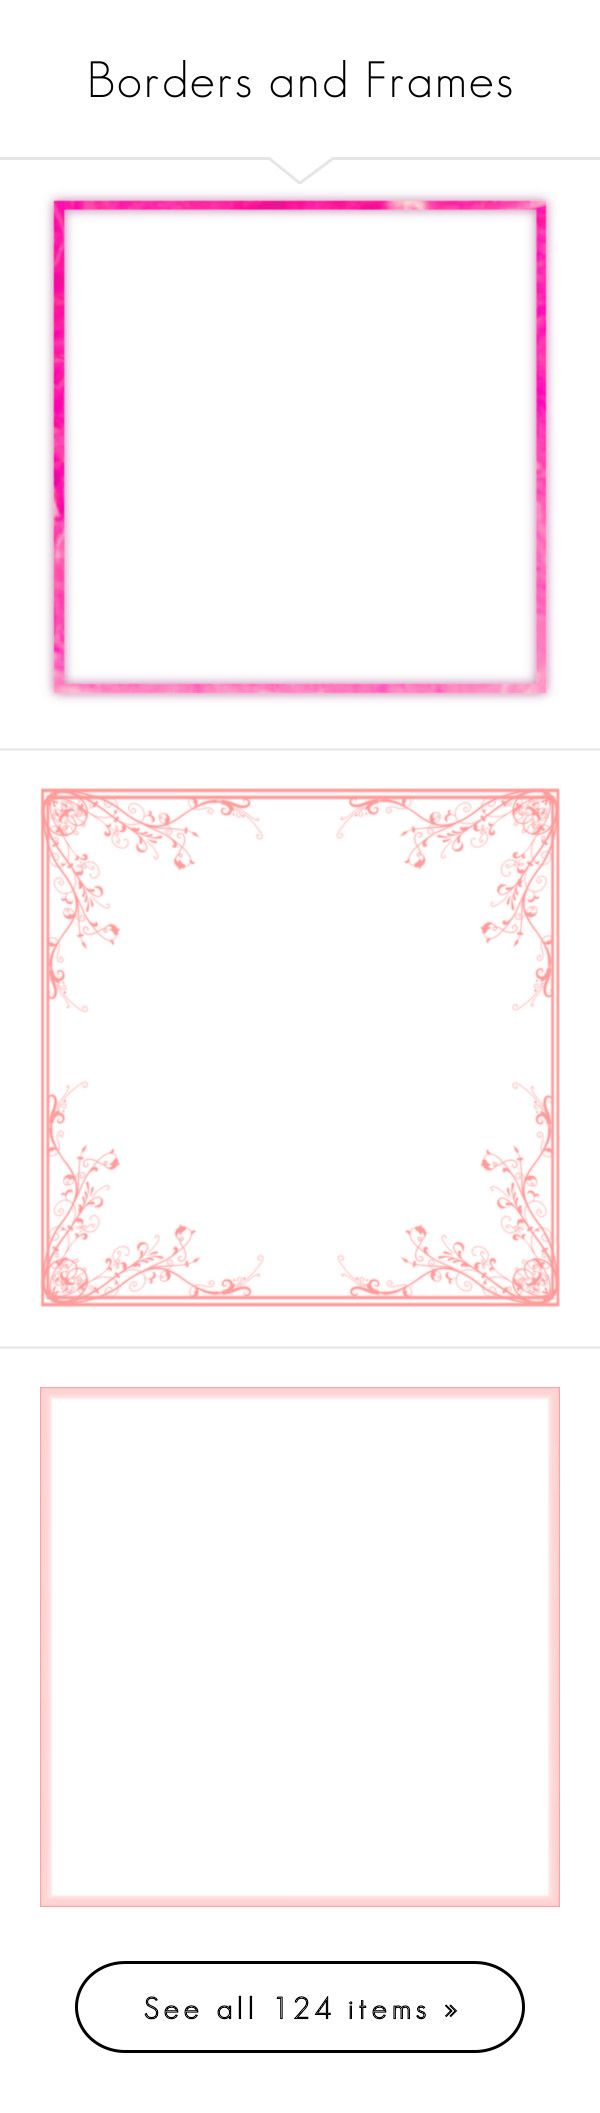 """""""Borders and Frames"""" by shell-mk22 ❤ liked on Polyvore featuring frames, backgrounds, borders, pink, cornici, effects, filler, outlines, picture frame and fillers"""